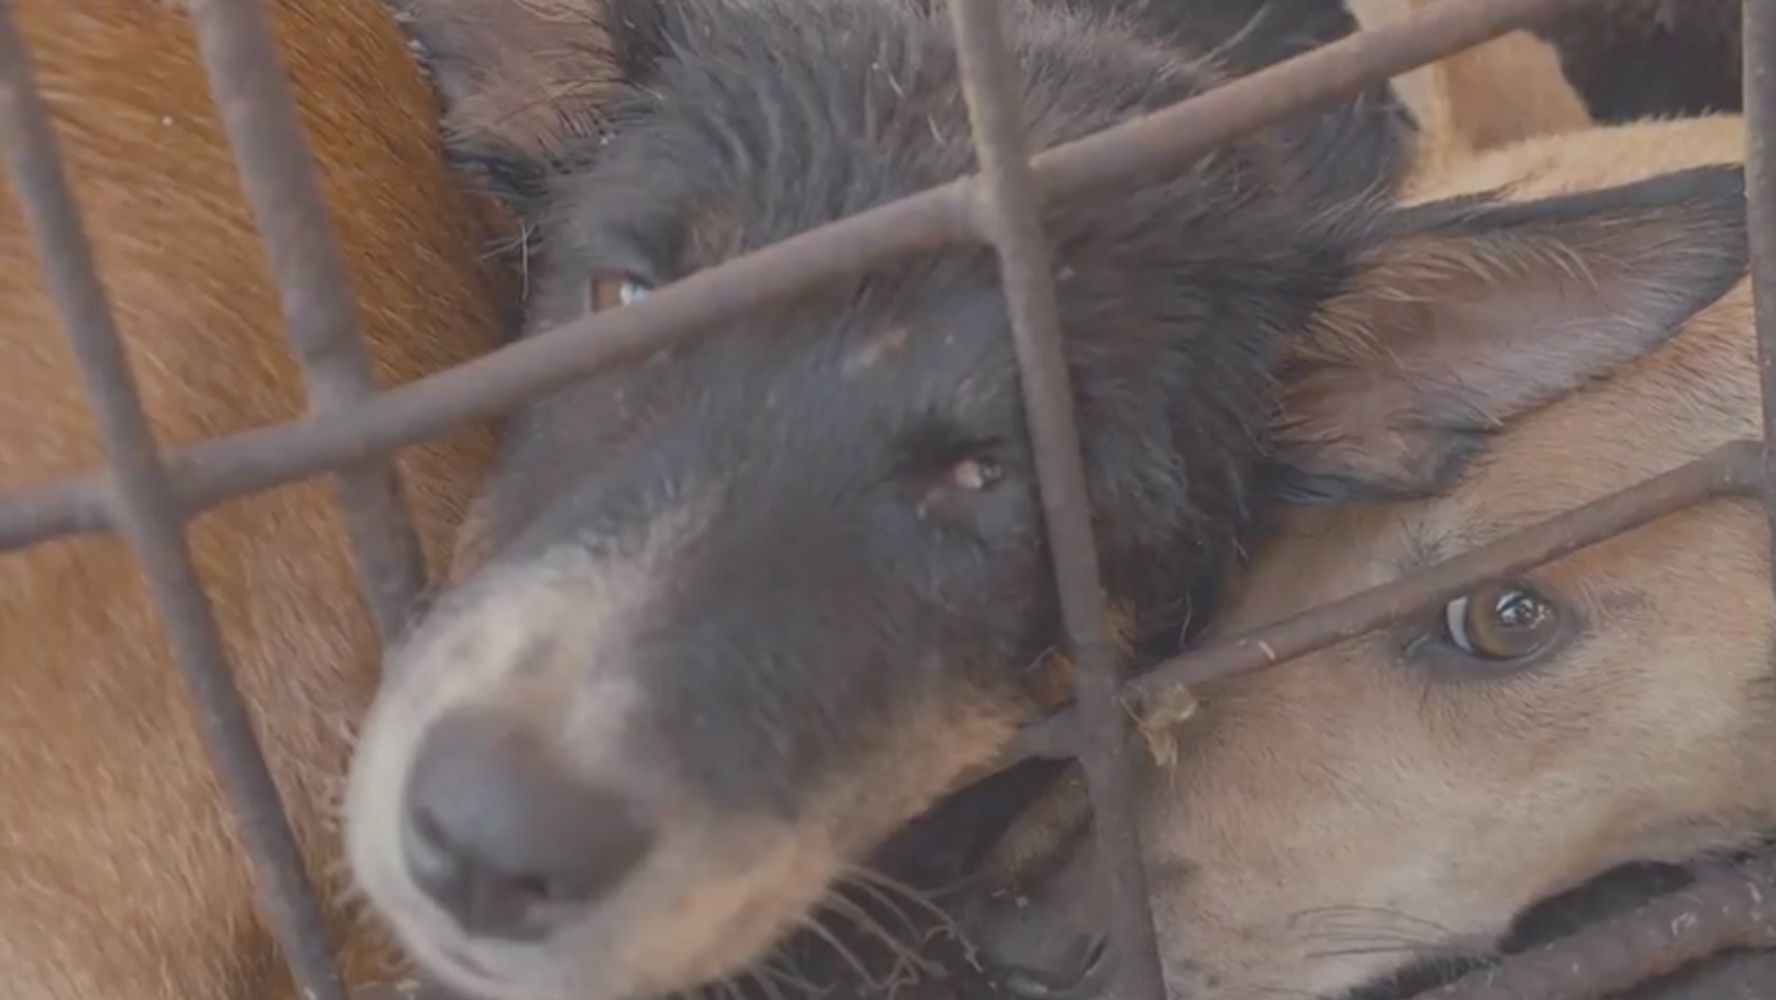 Activists Film 'Extreme Market' In Indonesia To Denounce Dog Meat